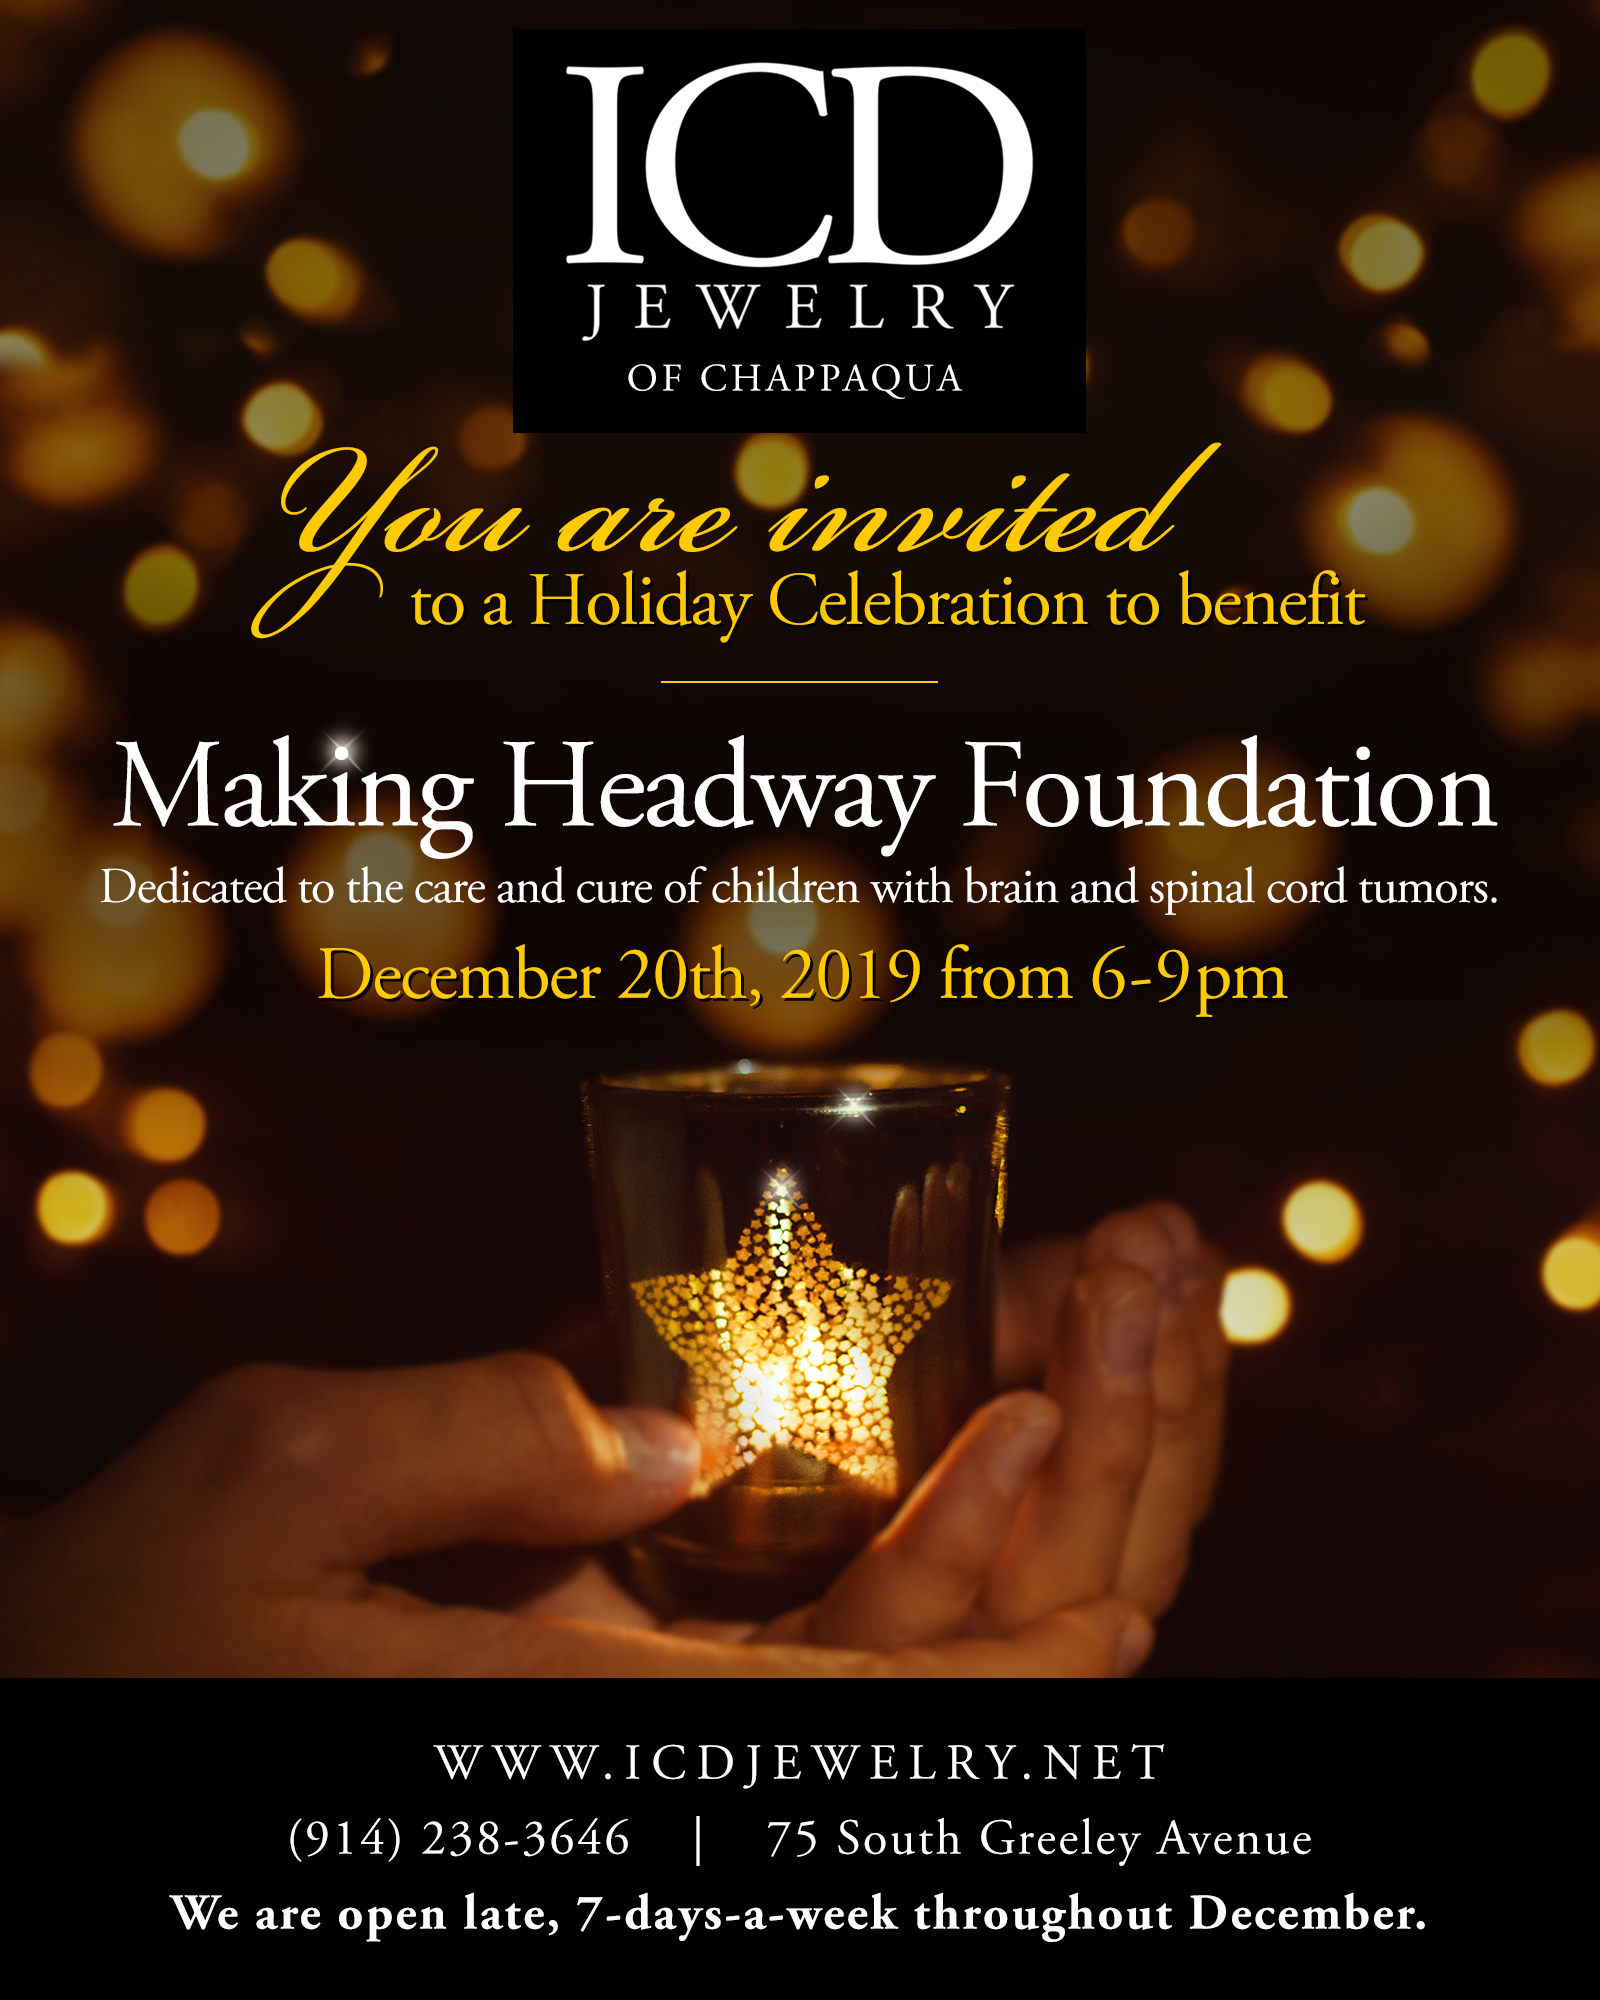 Making Headway Foundation Benefit, December 20th